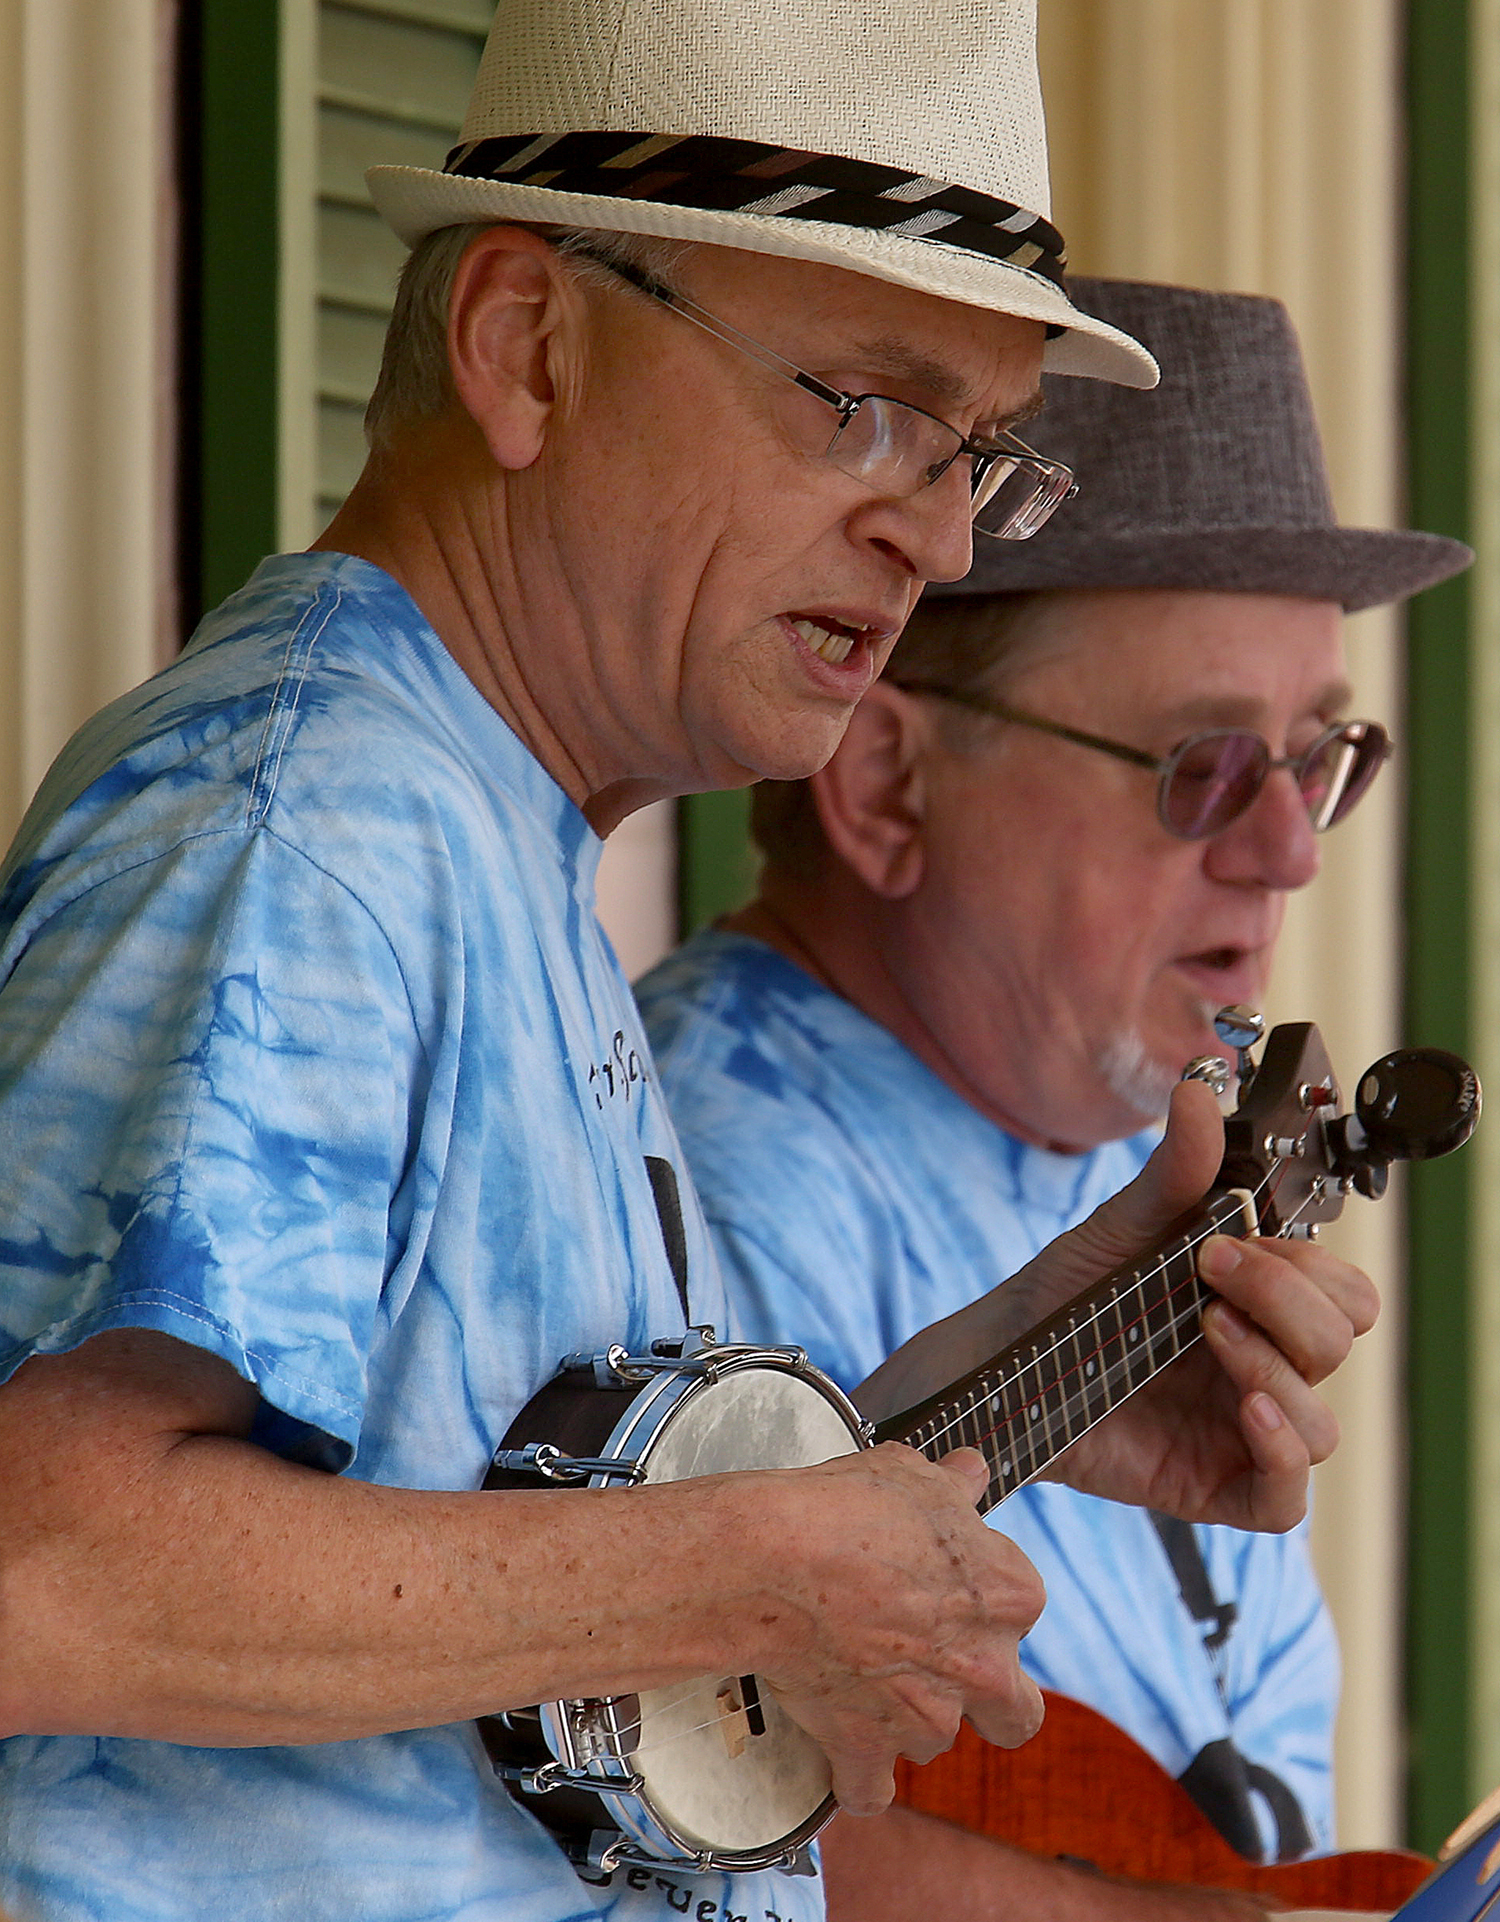 Steve Beilstein of Springfield plays his banjolele- a banjo ukulele, during the Ukutopians performance on Sunday afternoon. Behind him is group member Mike Kienzler. A performance by the Springfield Ukutopians, a group of area people who play and love the ukulele, took place at the Springfield Art Association as part of their Fine Art fair on Sunday, Sept. 21, 2014. David Spencer/The State Journal-Register